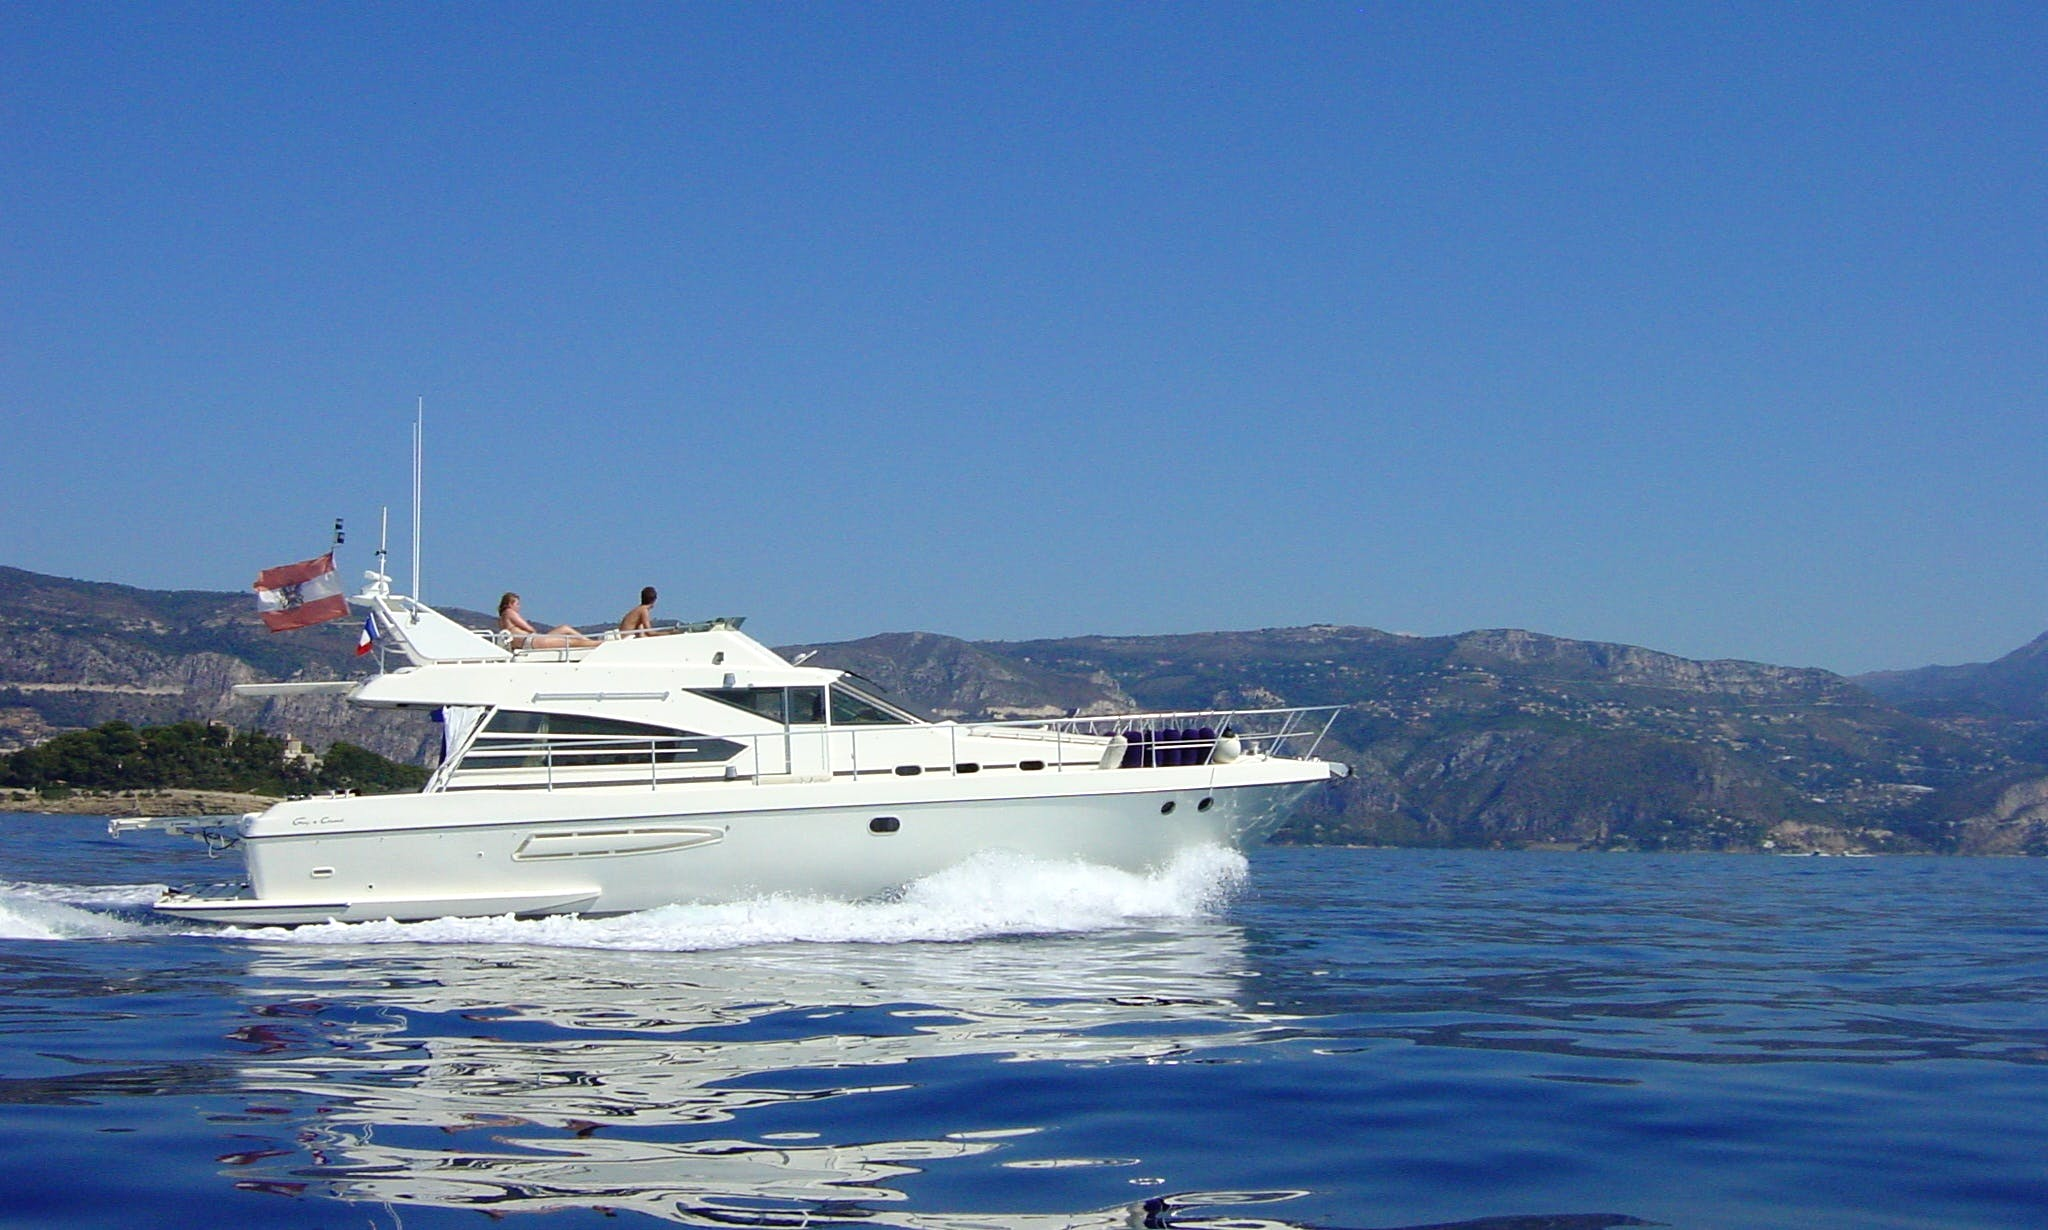 Take 6 firends out on this Motor Yacht in Menton, France